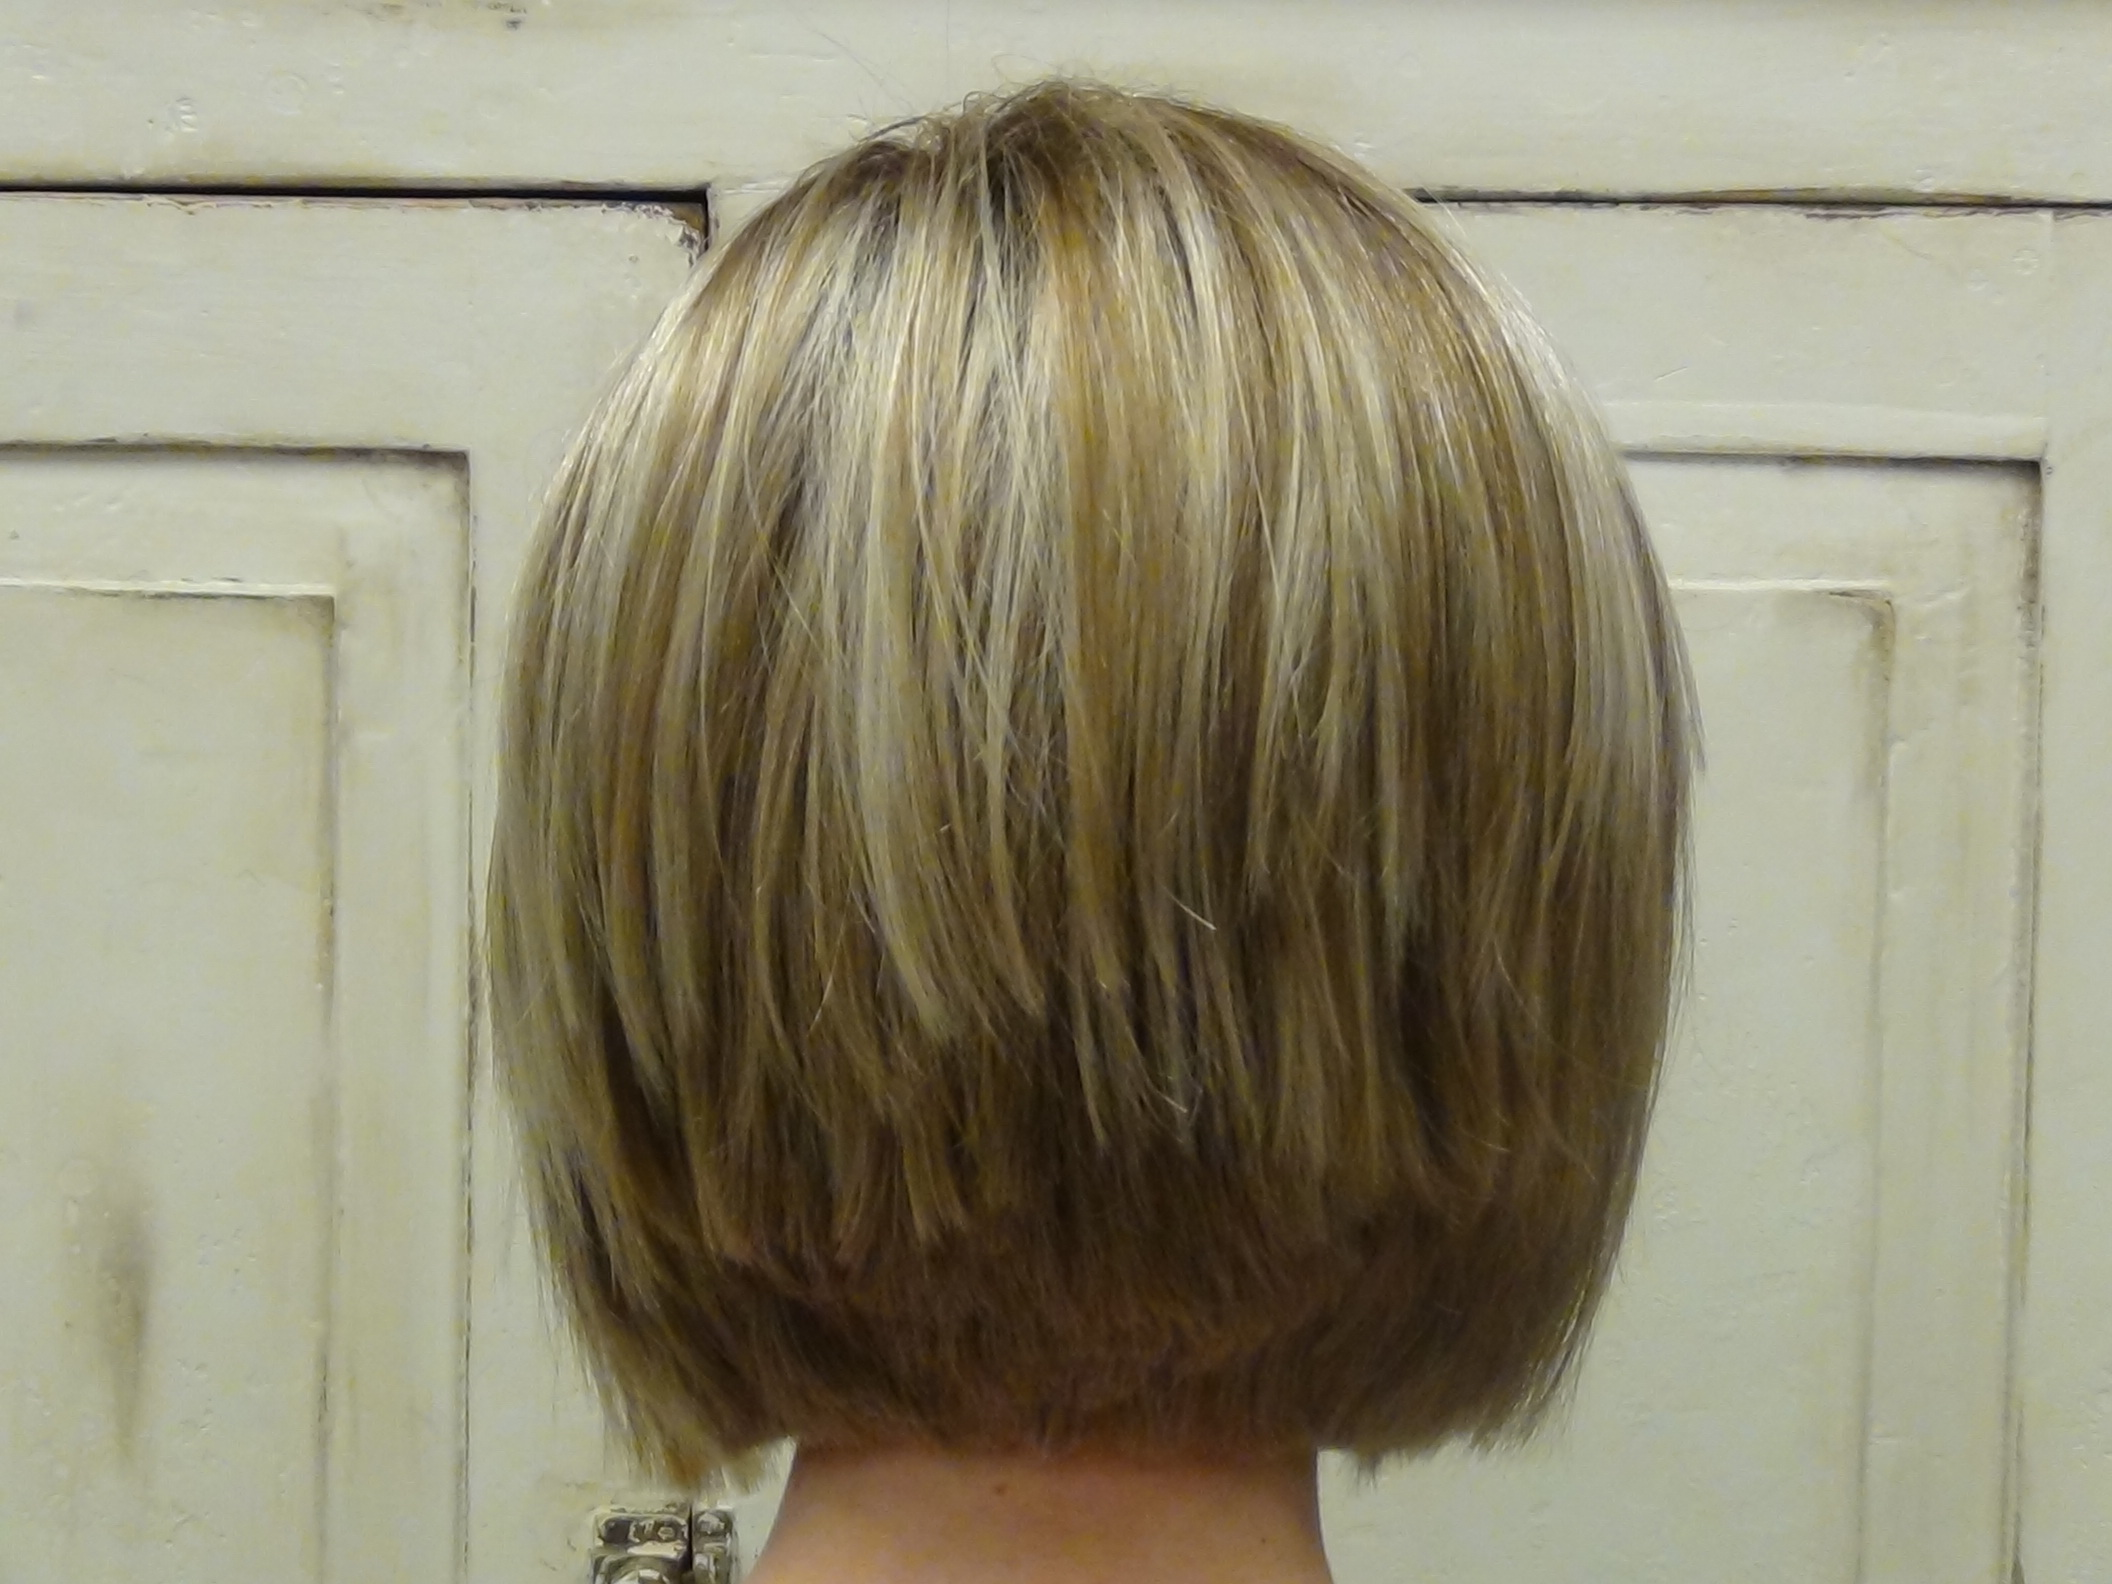 Cut And Style : Cut and Style An Aline Bobcut Hairstyle Boys and Girls Hair Styles